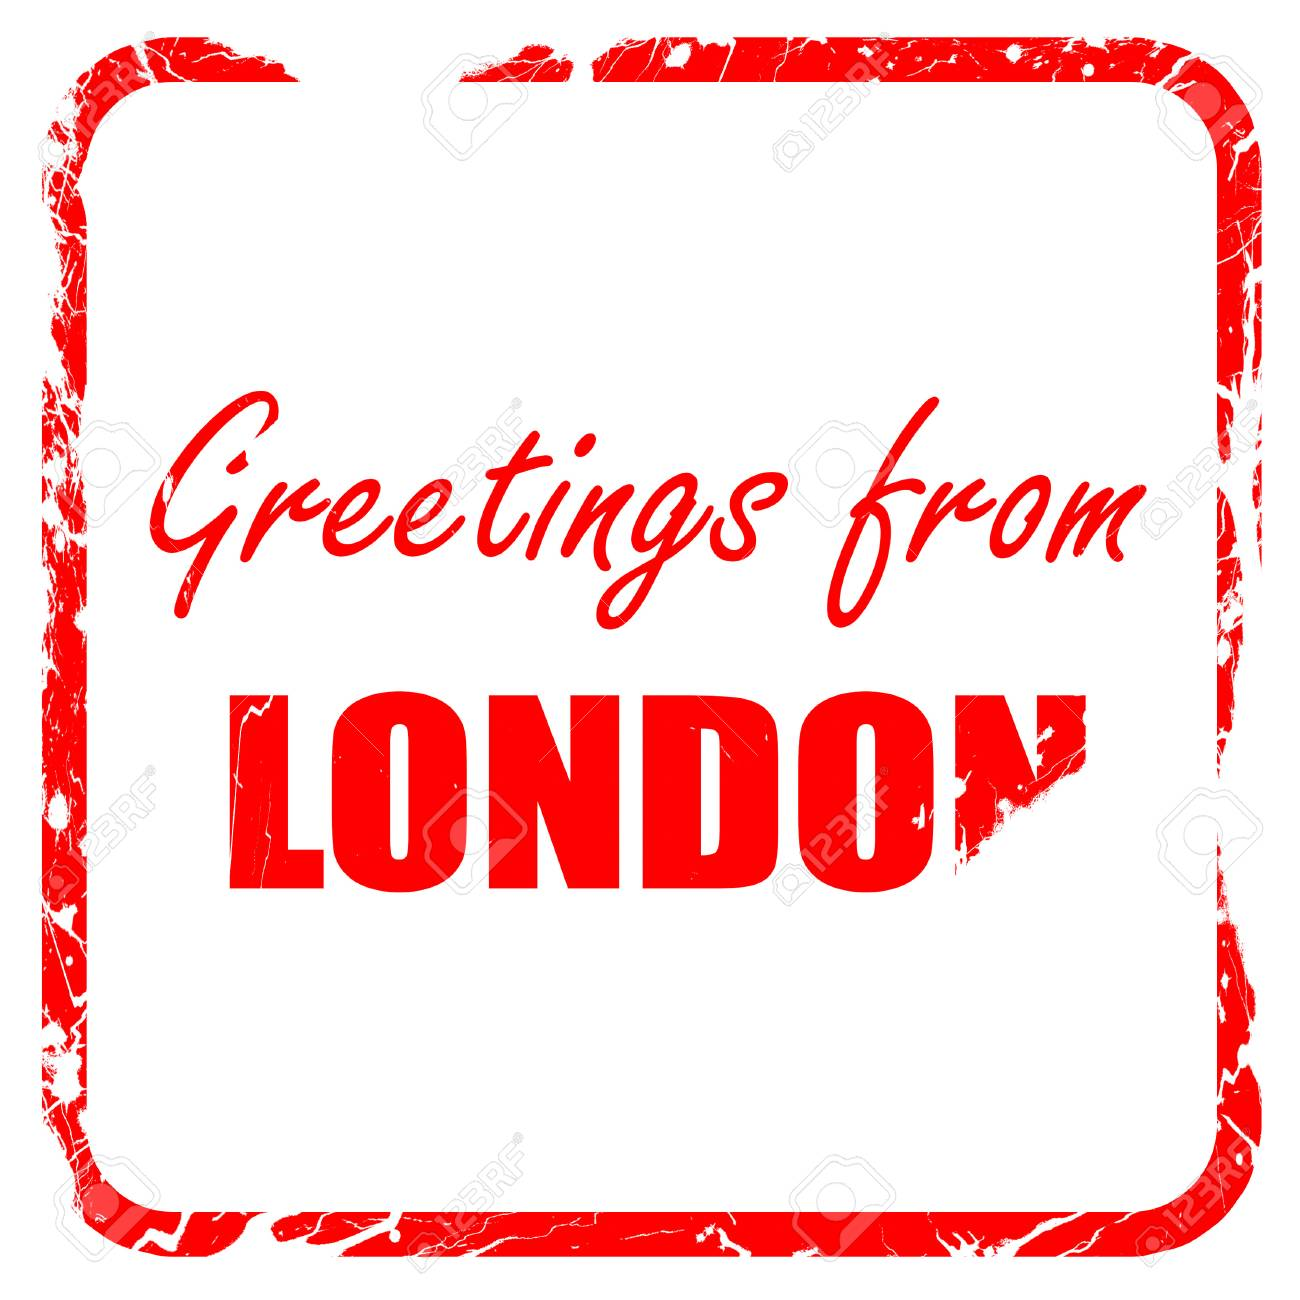 Greetings from london with some smooth lines, red rubber stamp